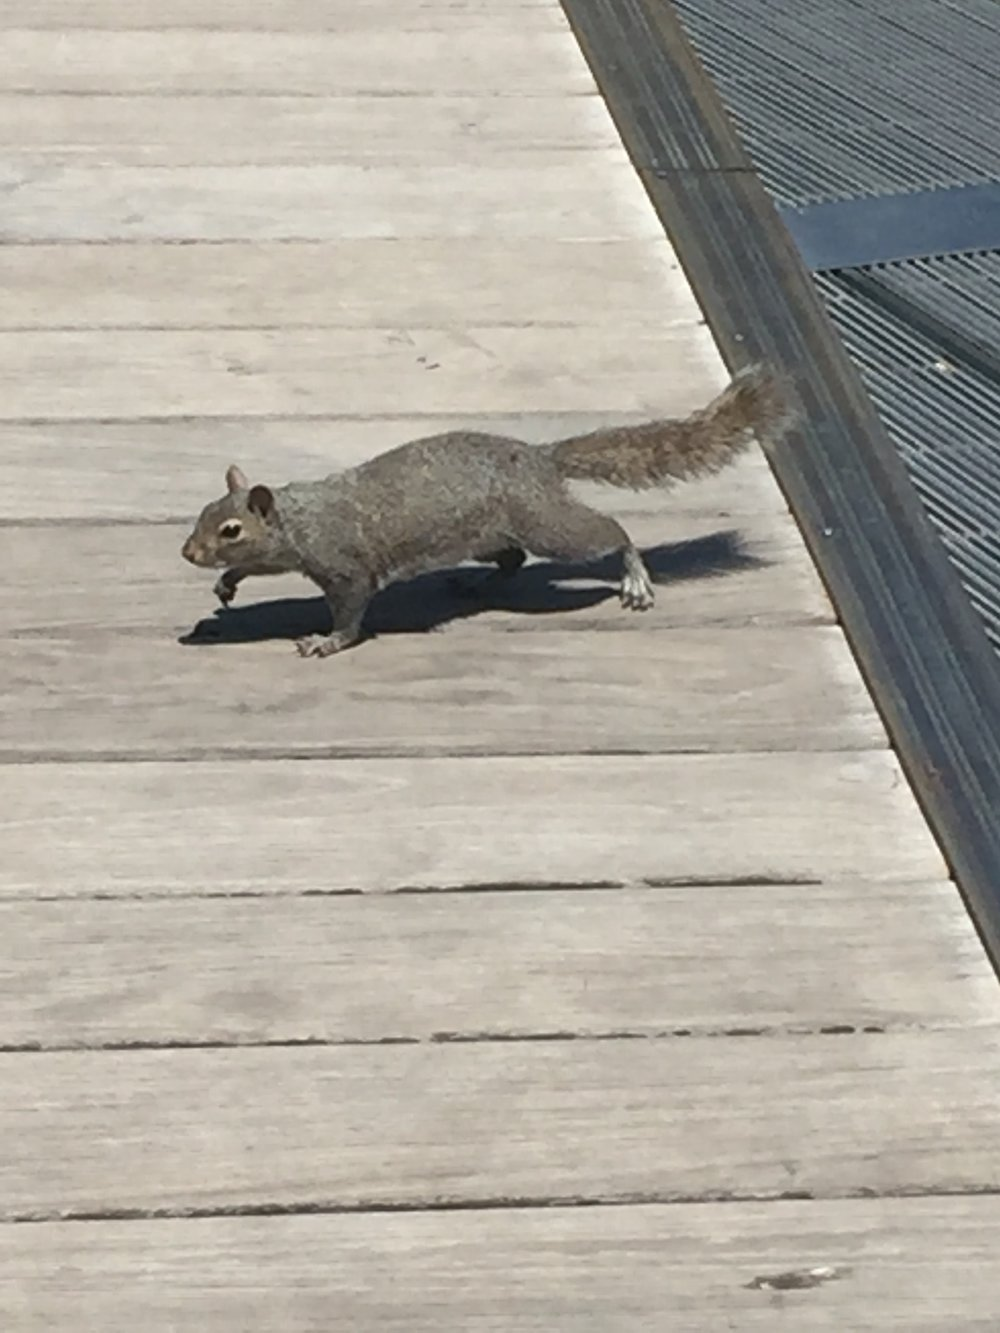 You know what's even better than a poem? - A grainy photo of a squirrel up to no good